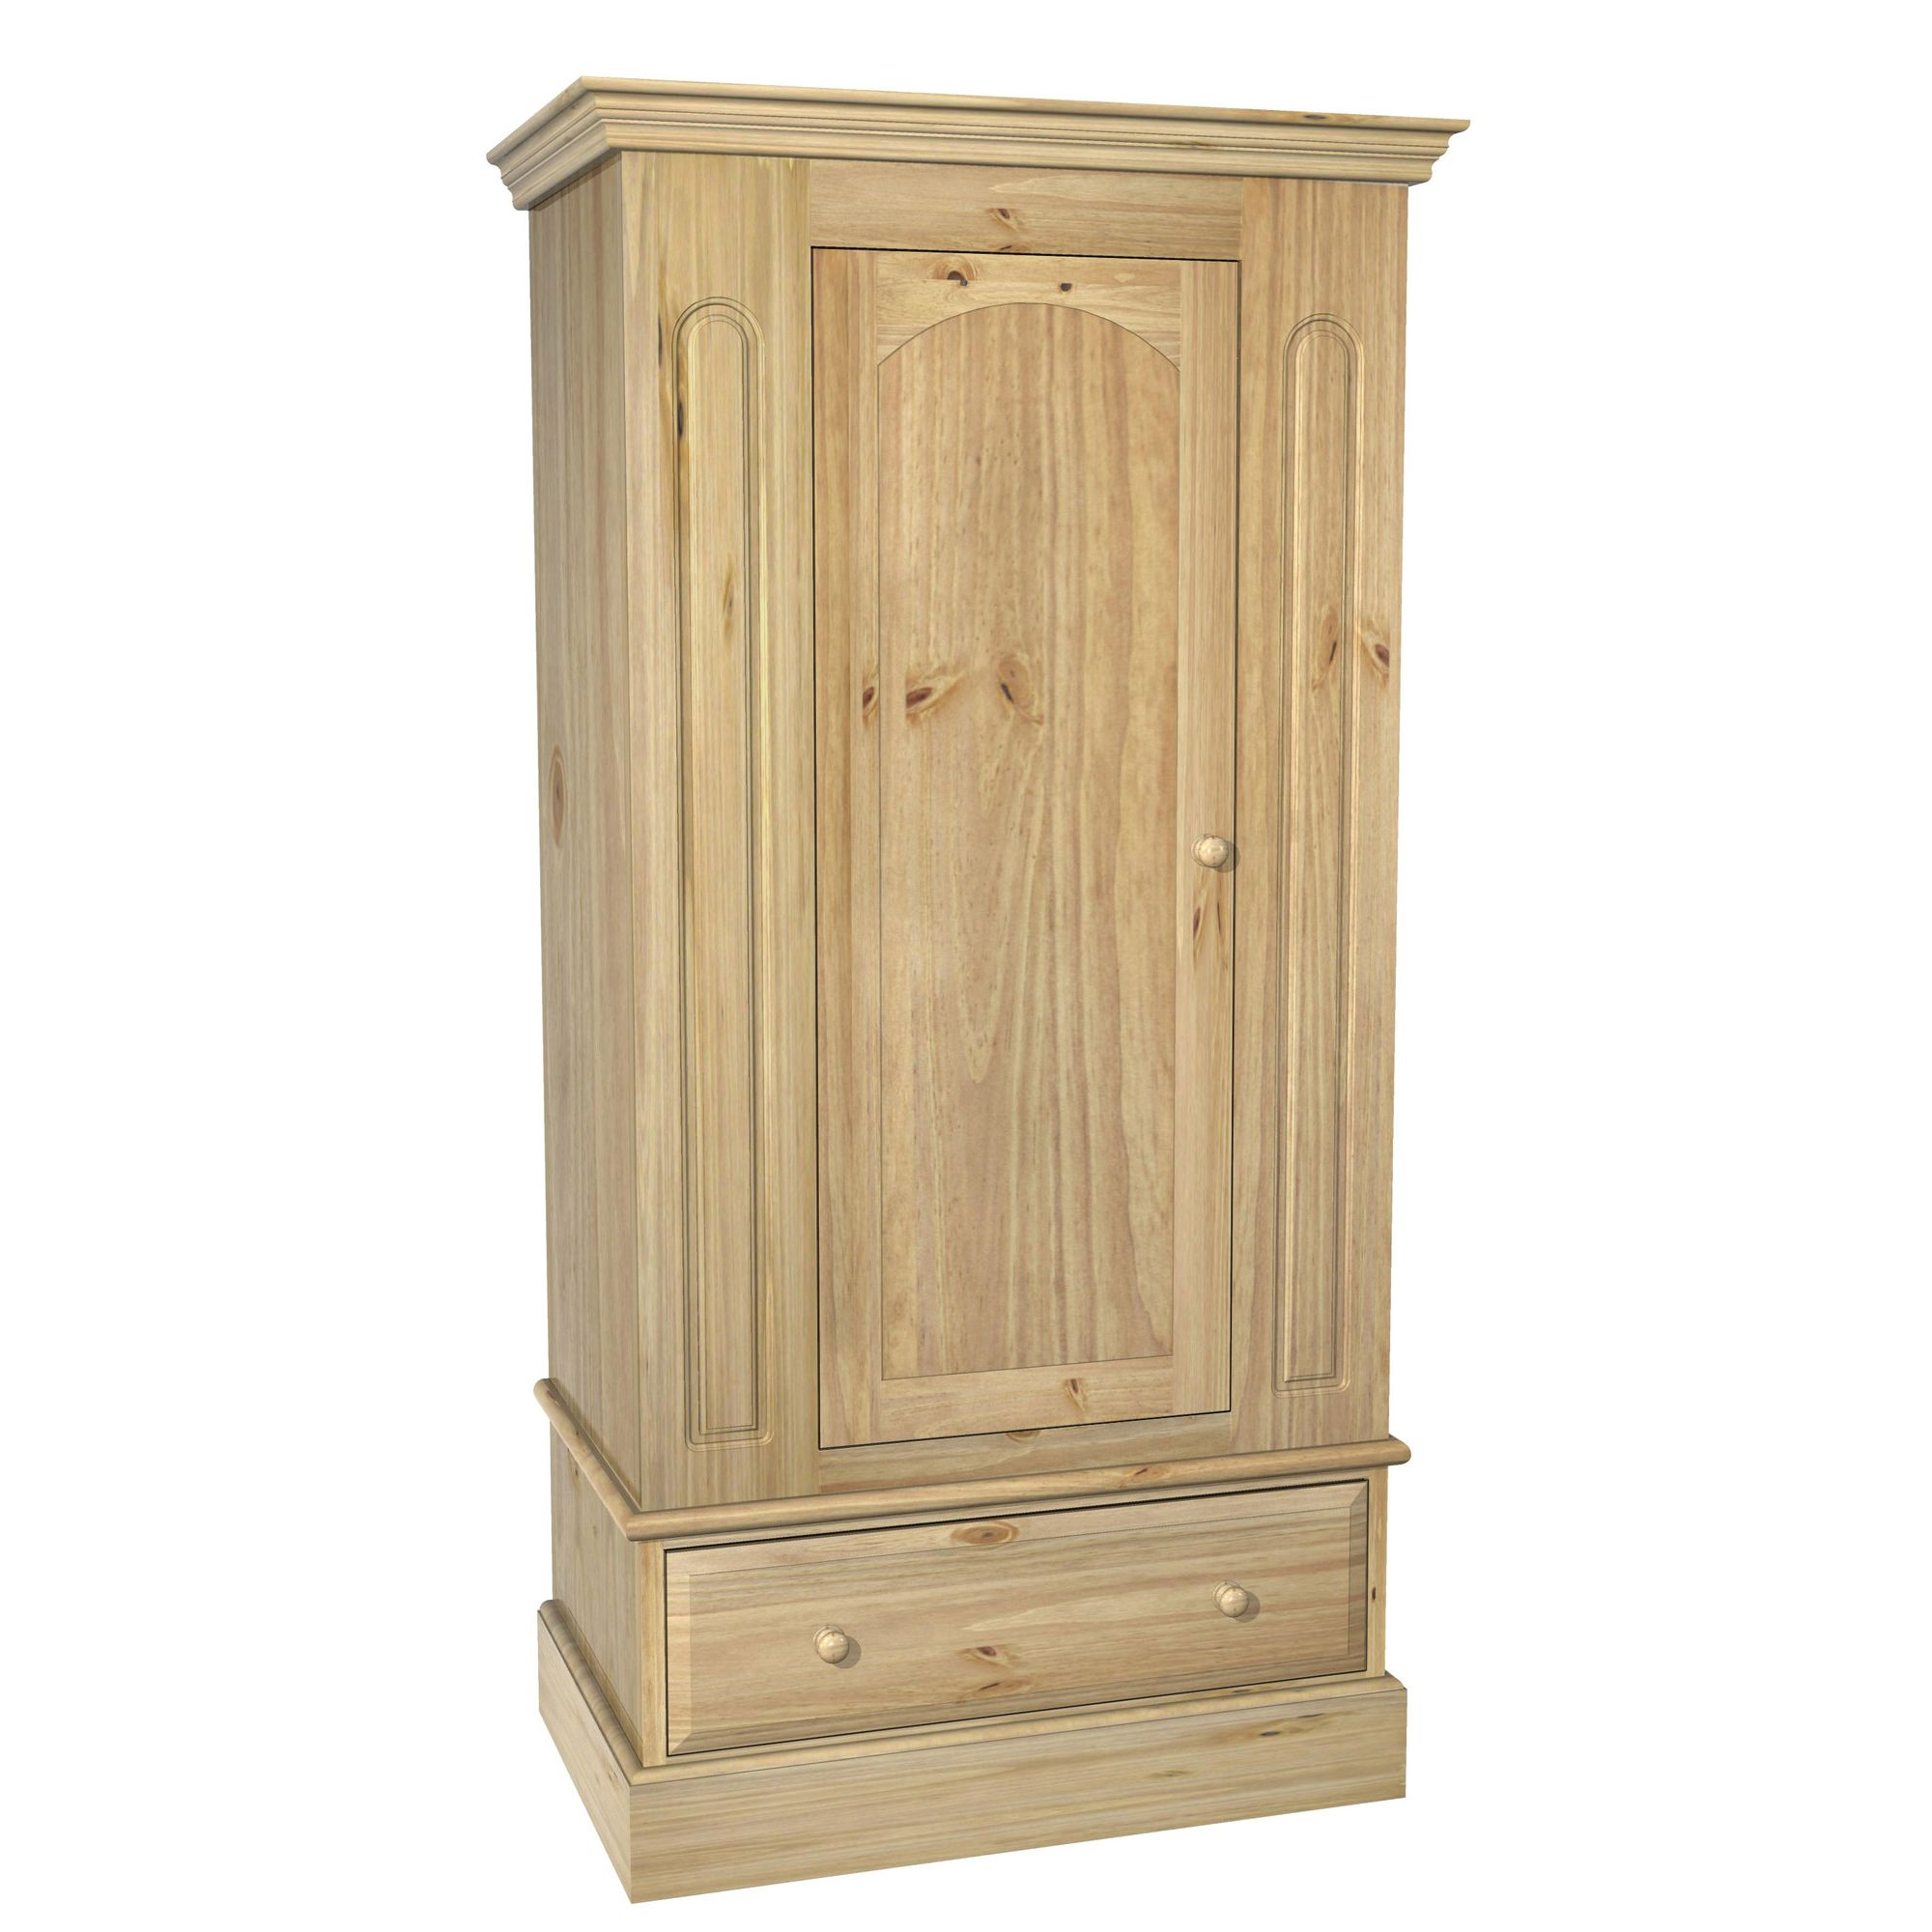 Kelburn Furniture Woodland Pine 1 Door 1 Drawer Wardrobe at Tesco Direct